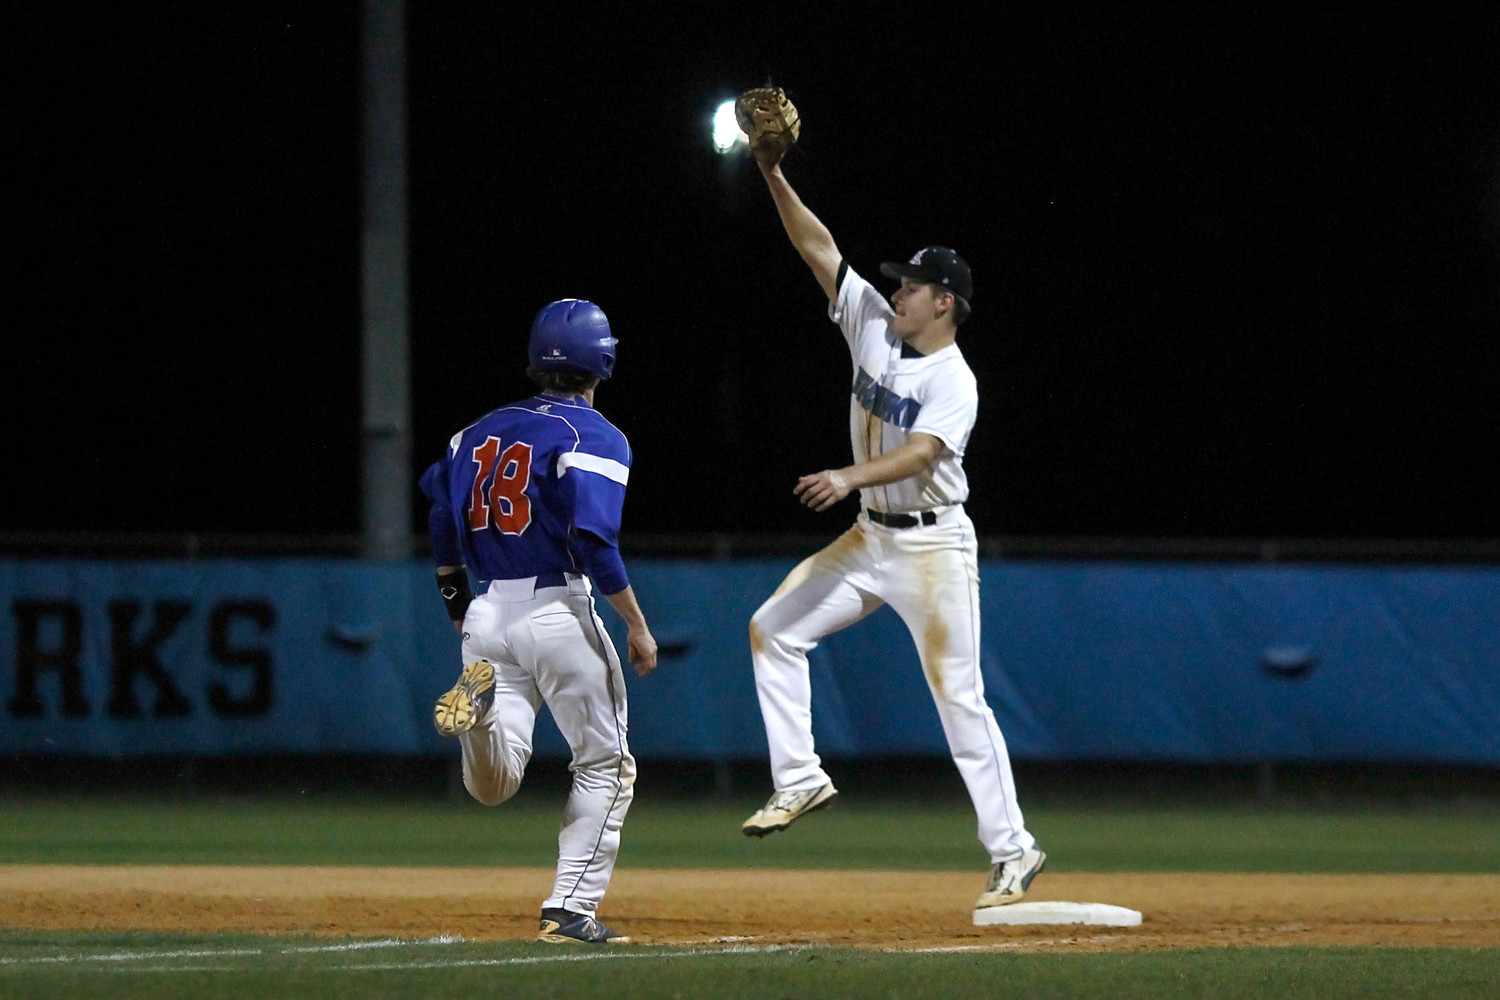 Sharks first baseman Tony Roca stretches high to retire the Bolles batter.